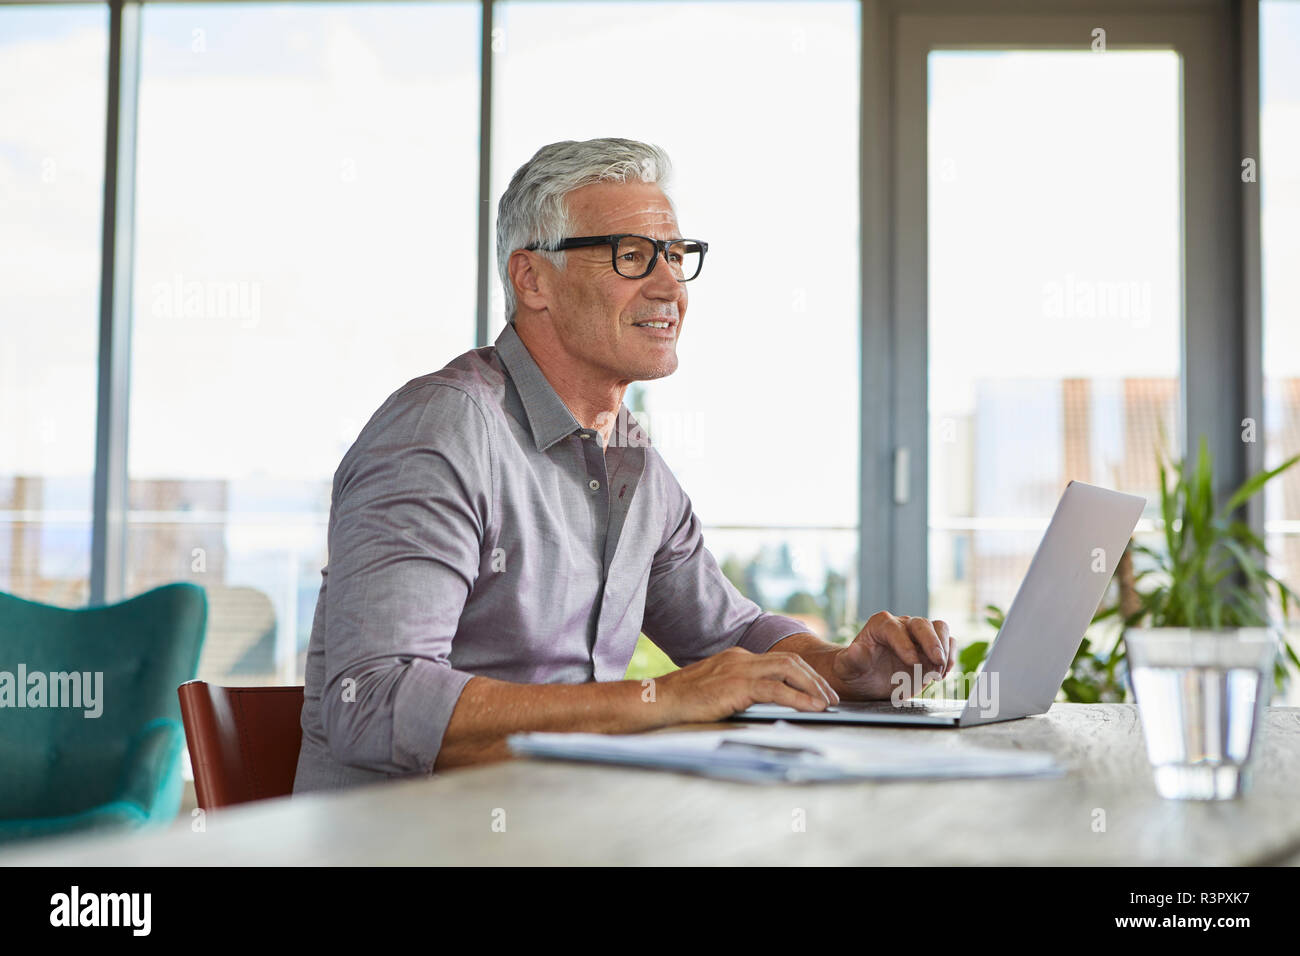 Mature man using laptop on table at home Stock Photo